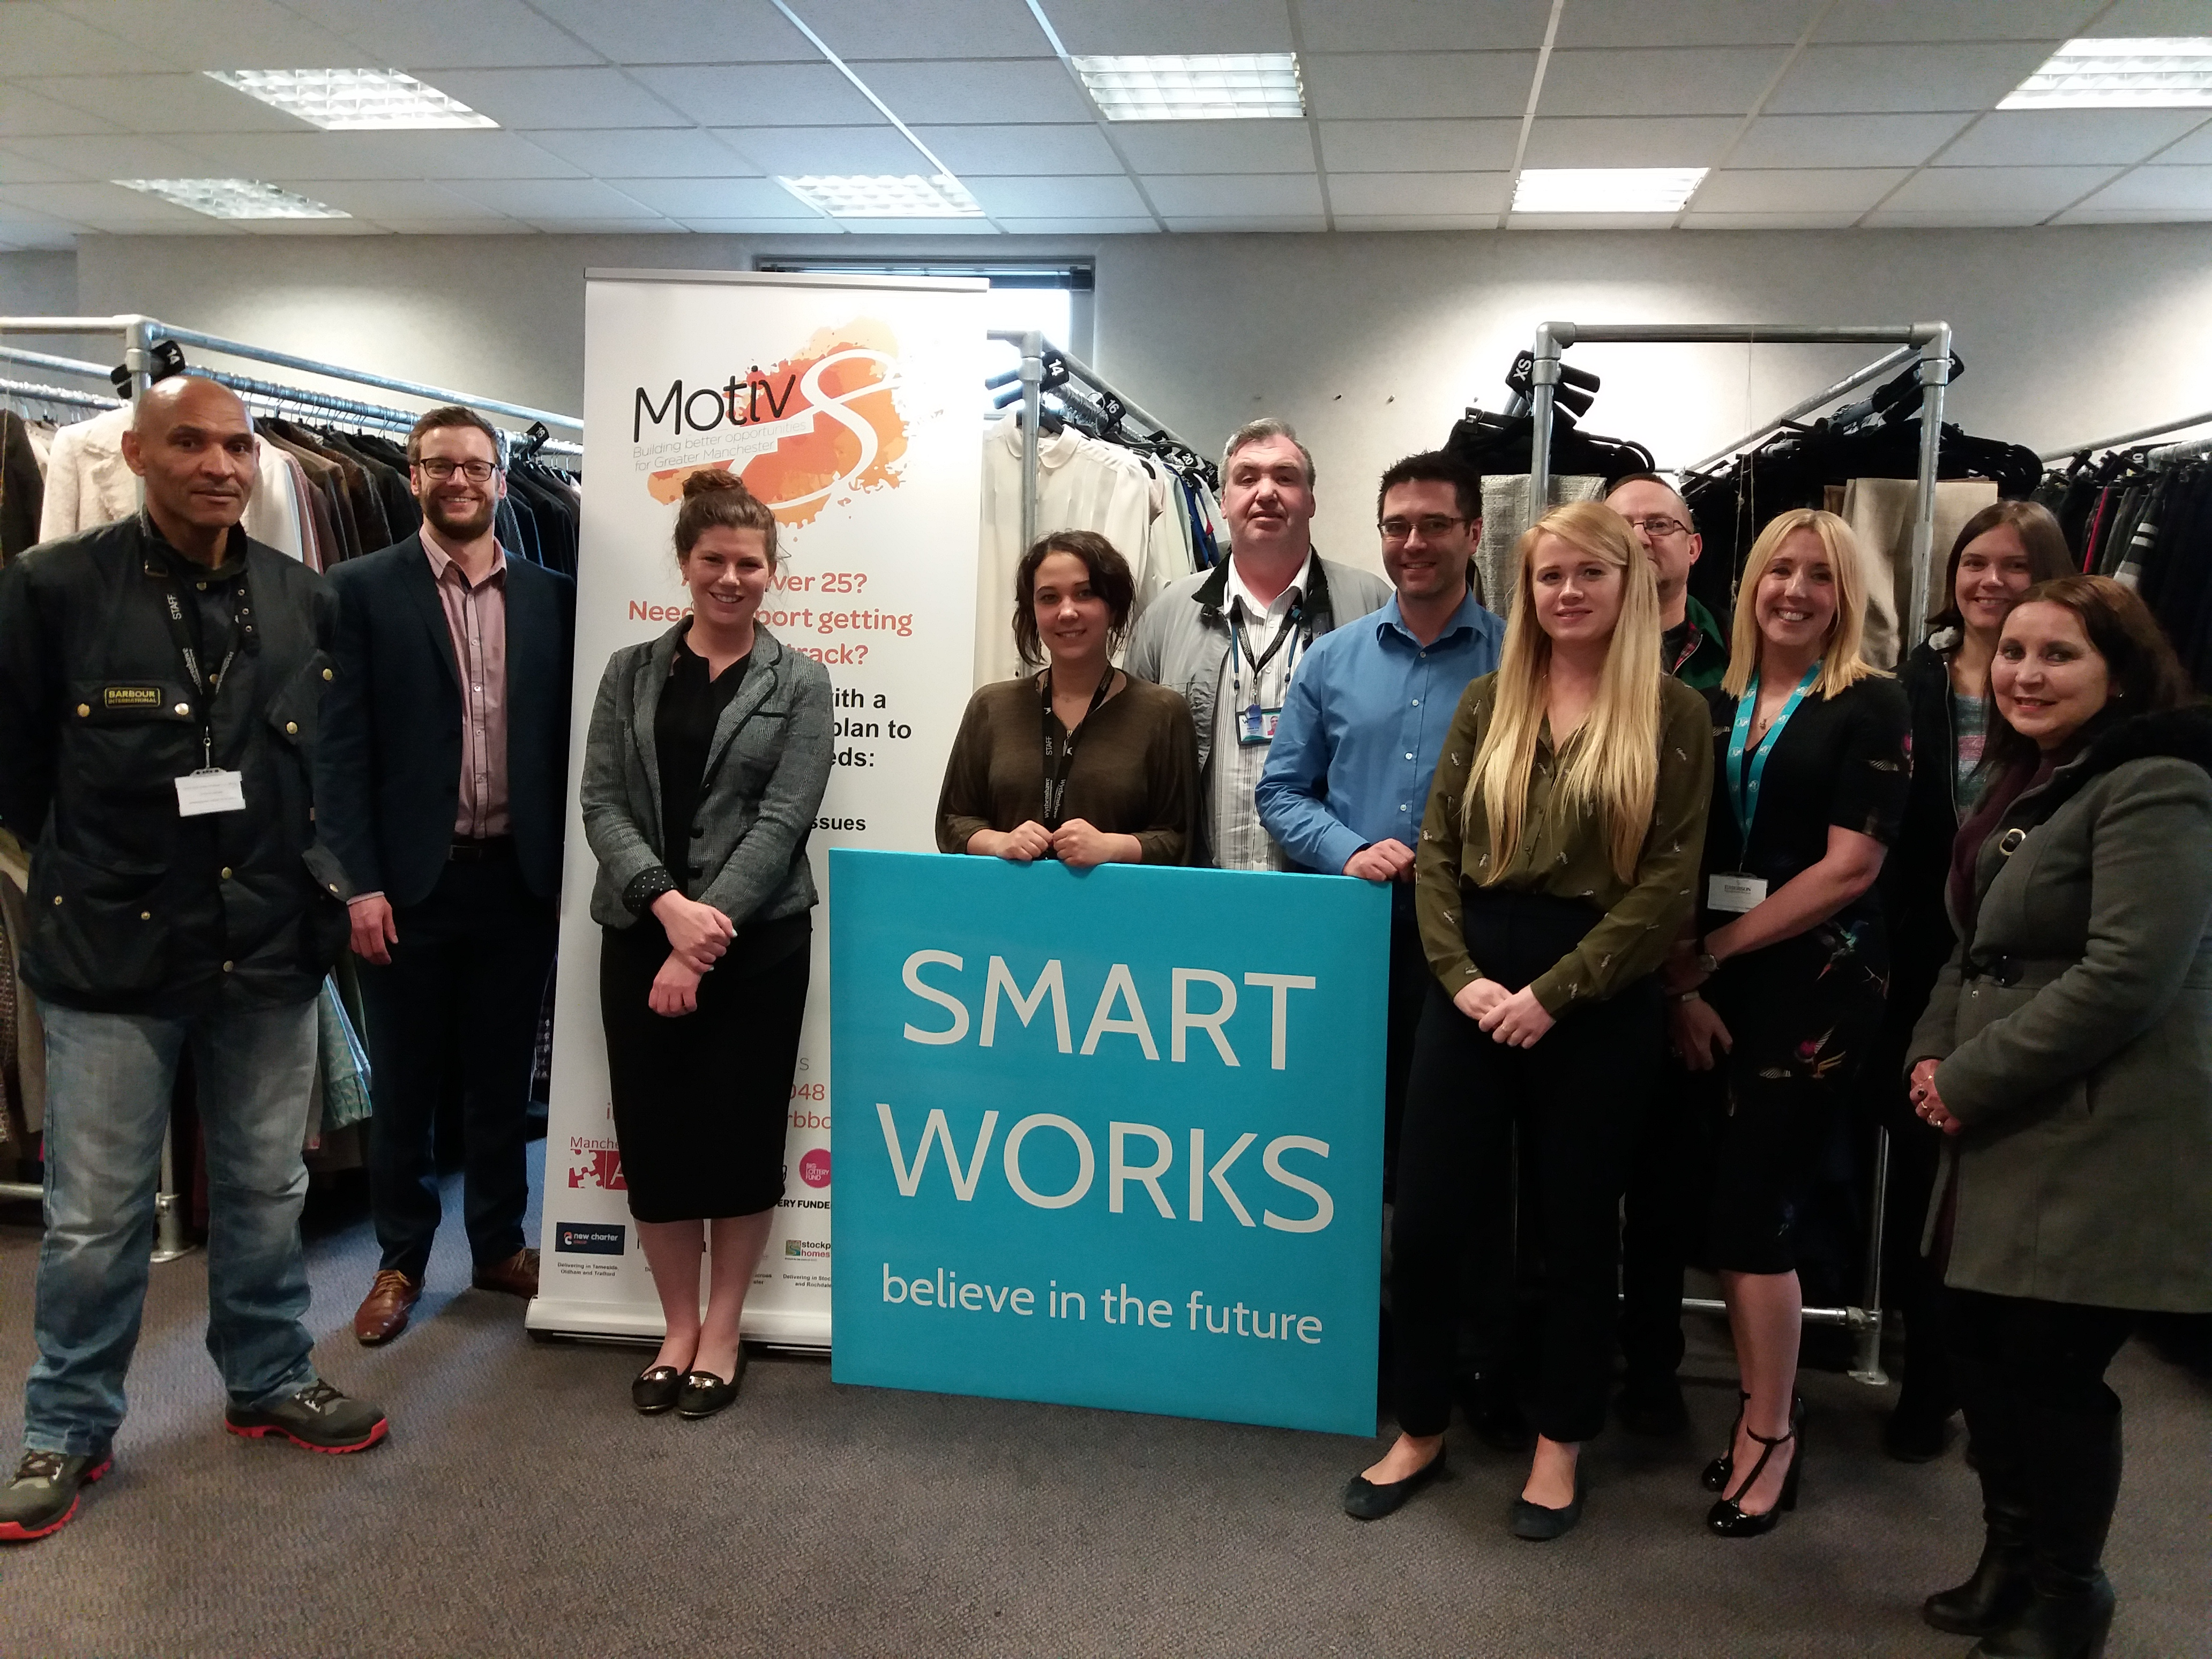 SmartWorks_and_Motiv8_team.jpg